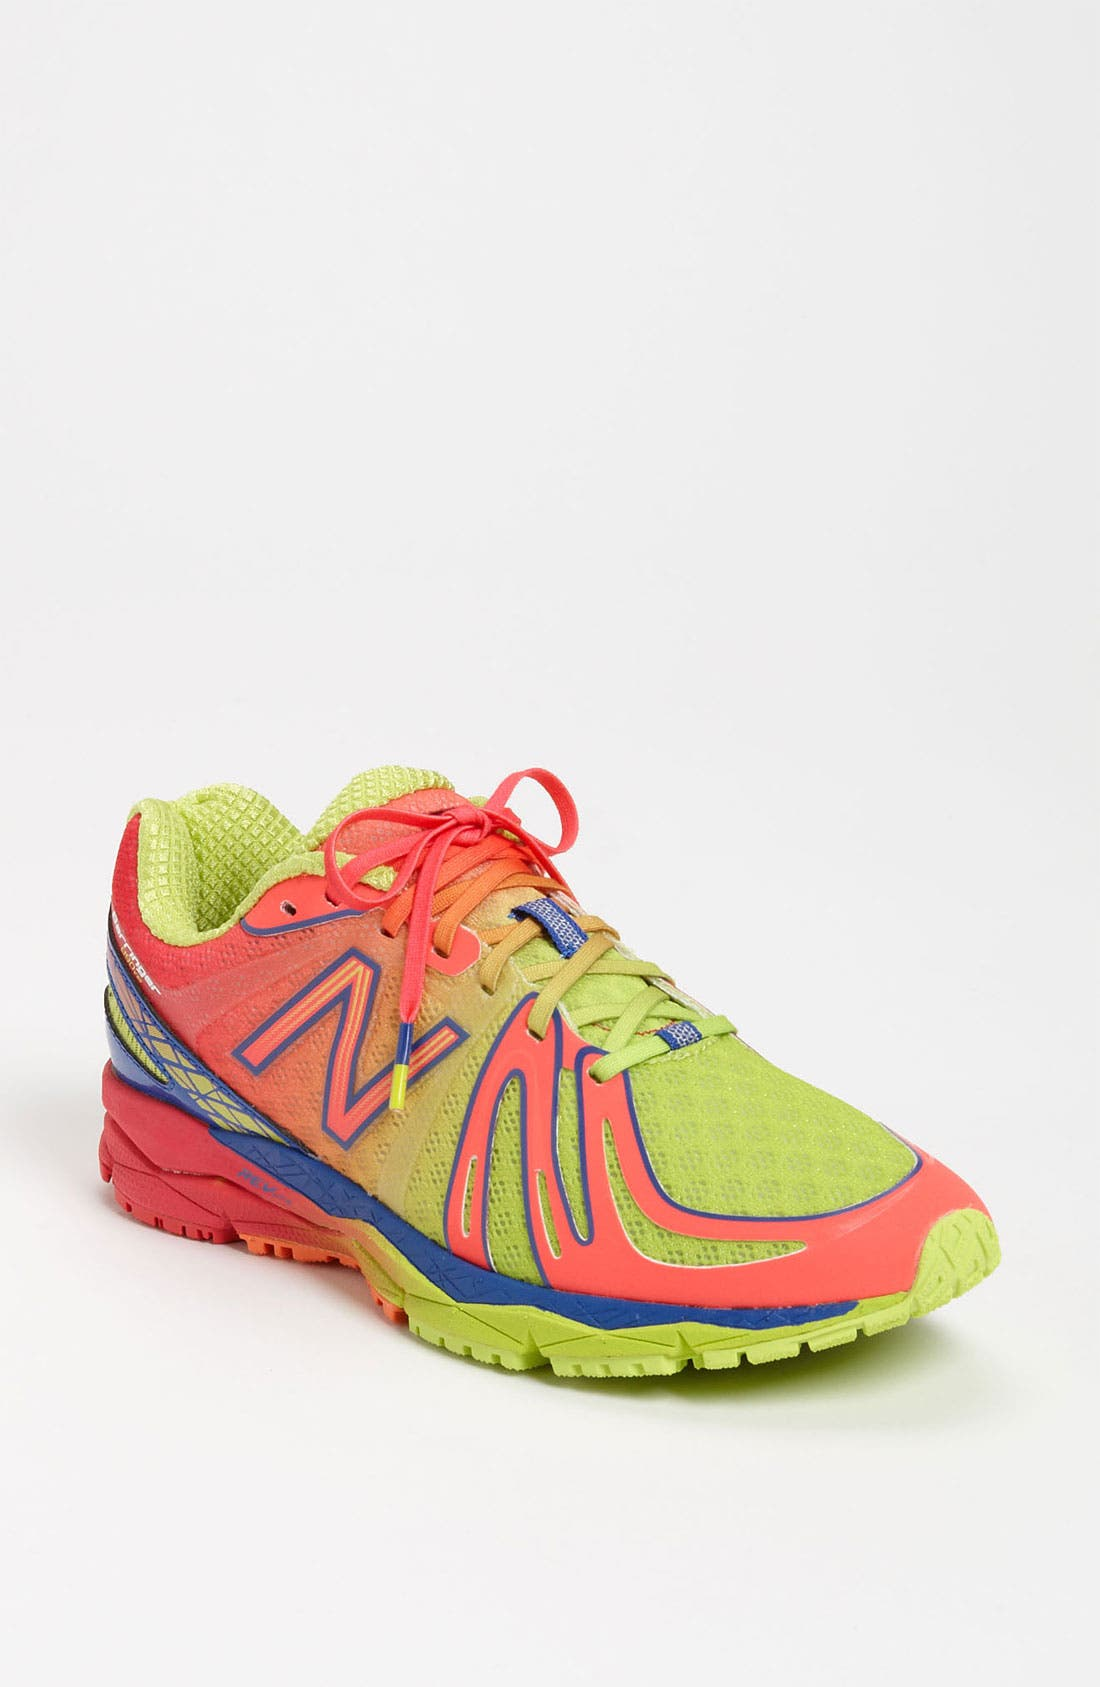 Alternate Image 1 Selected - New Balance '890' Rainbow Running Shoe (Women)